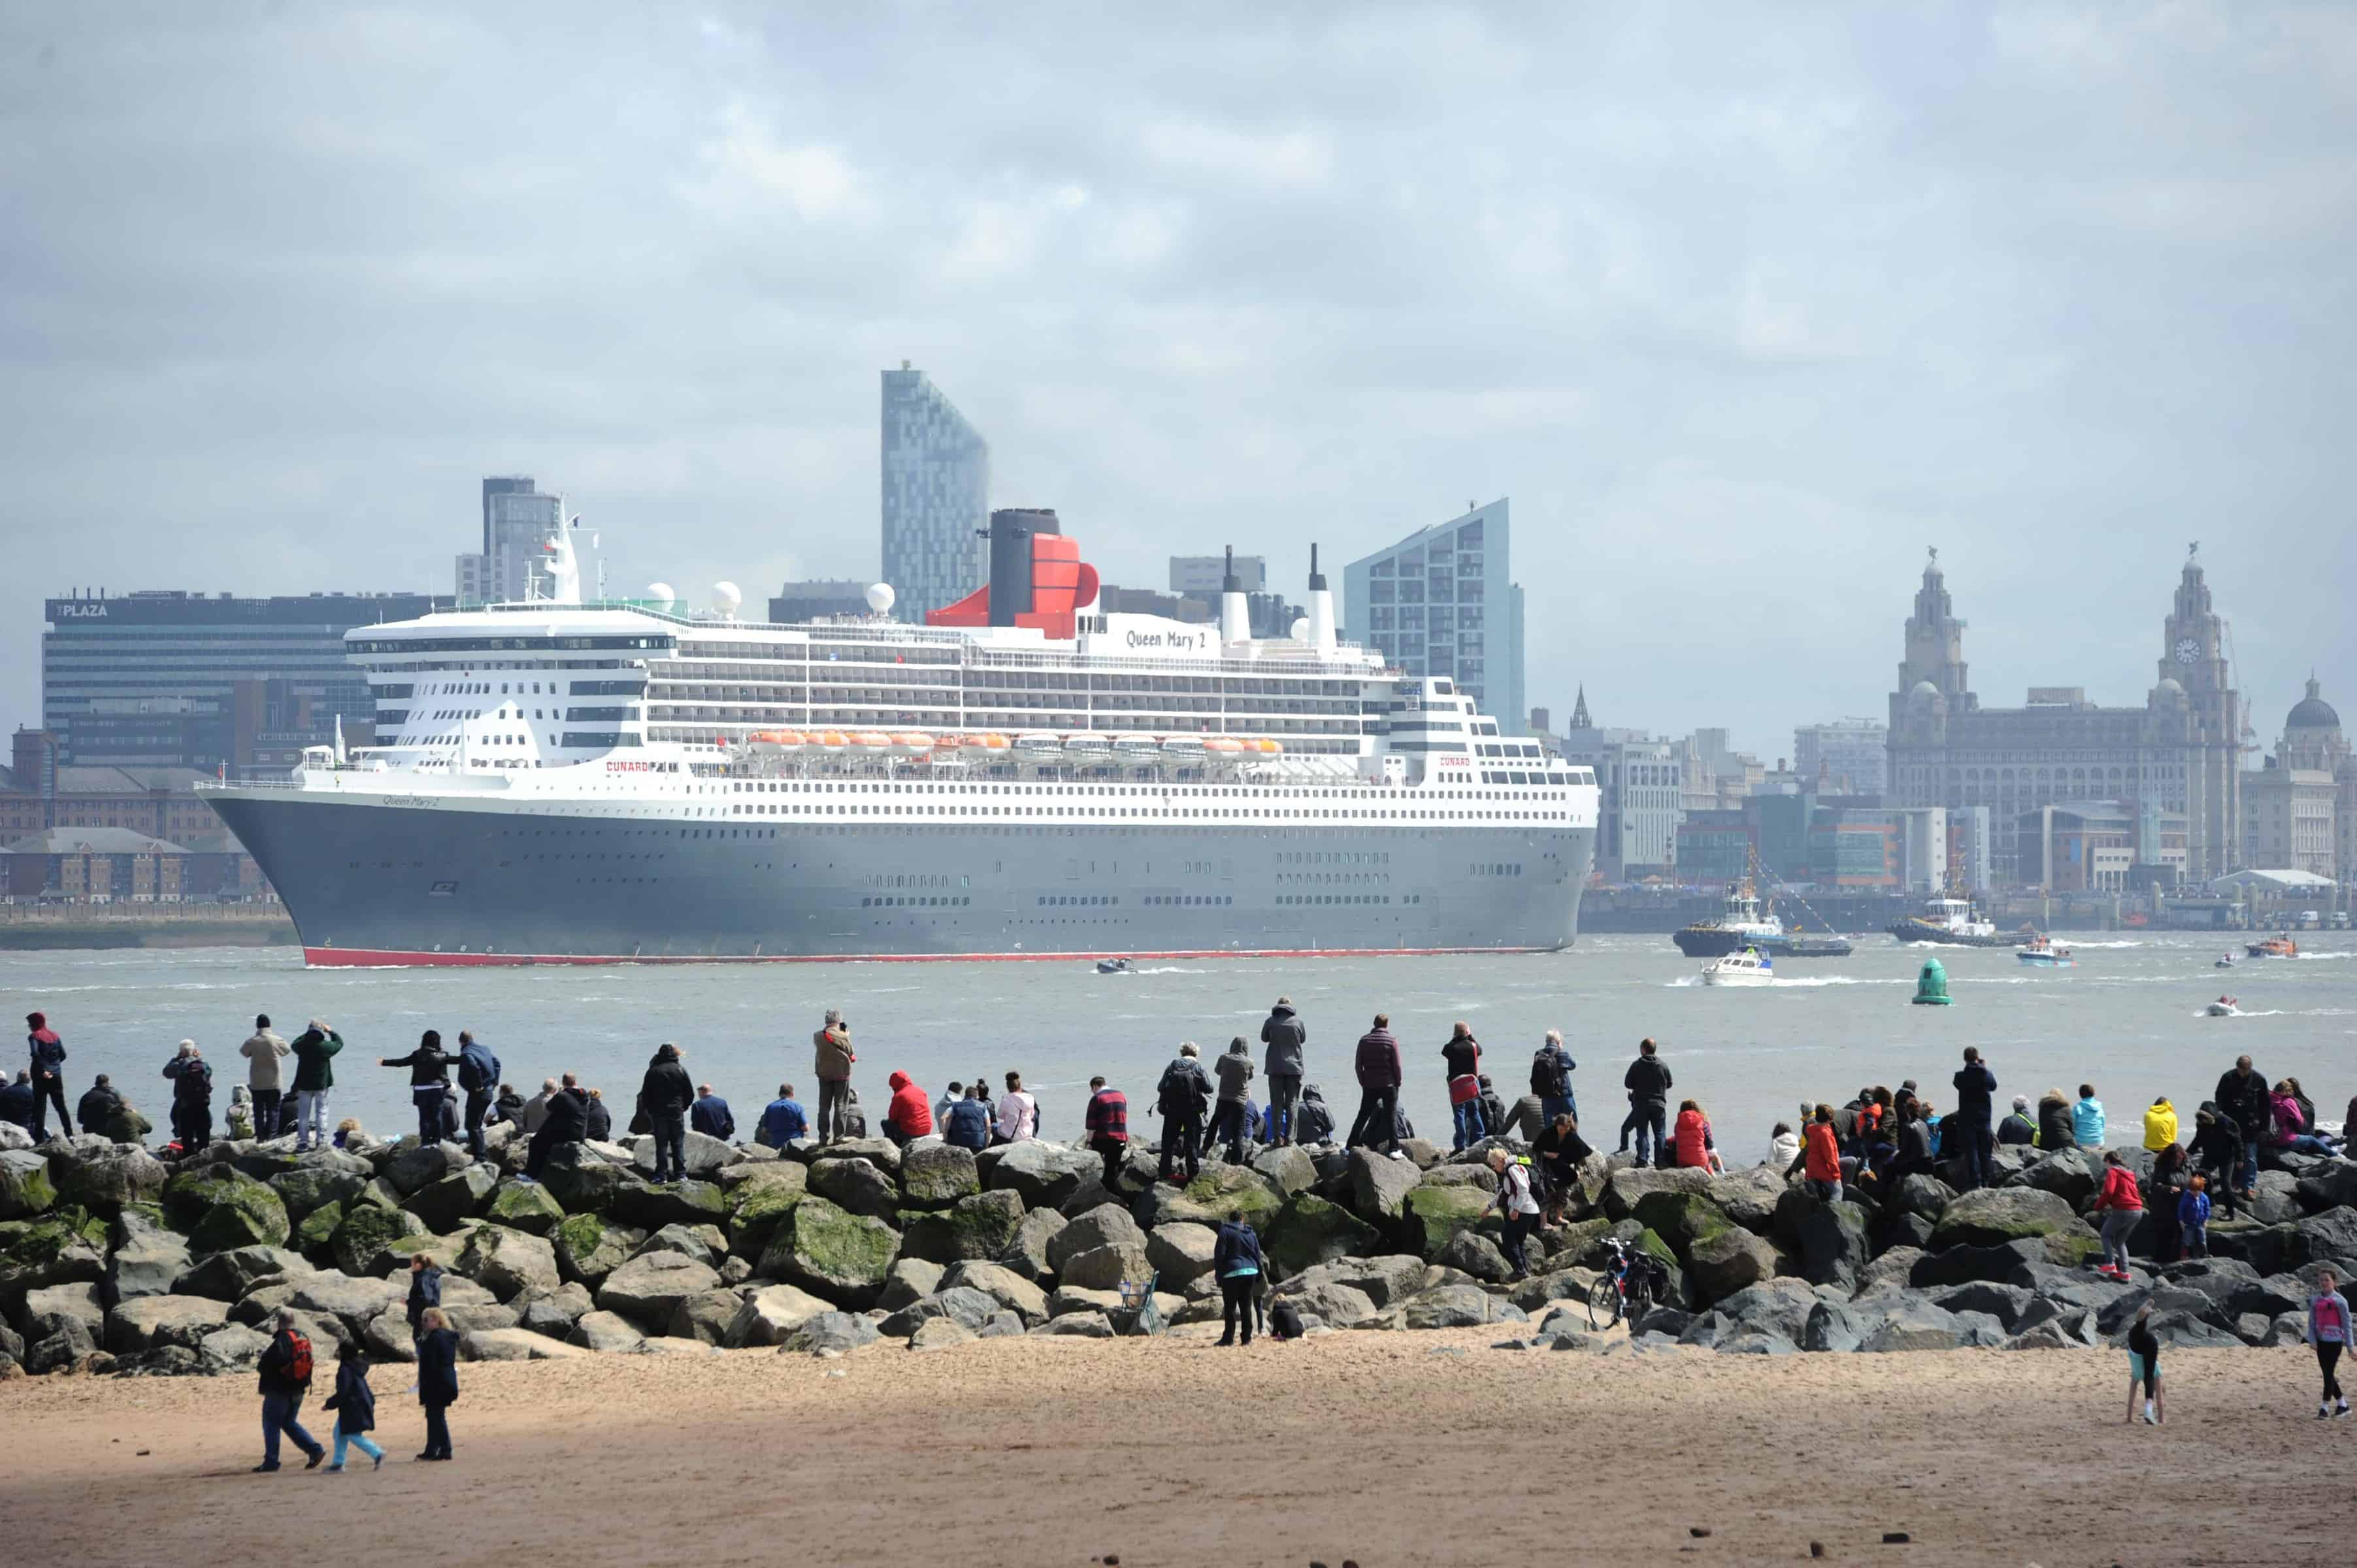 The Three Queens on the River Mersey as part of Cunard's 175th Anniversary celebrations in Liverpool.The Queen Mary 2 leaves Liverpool after the Three Queens celebrations.